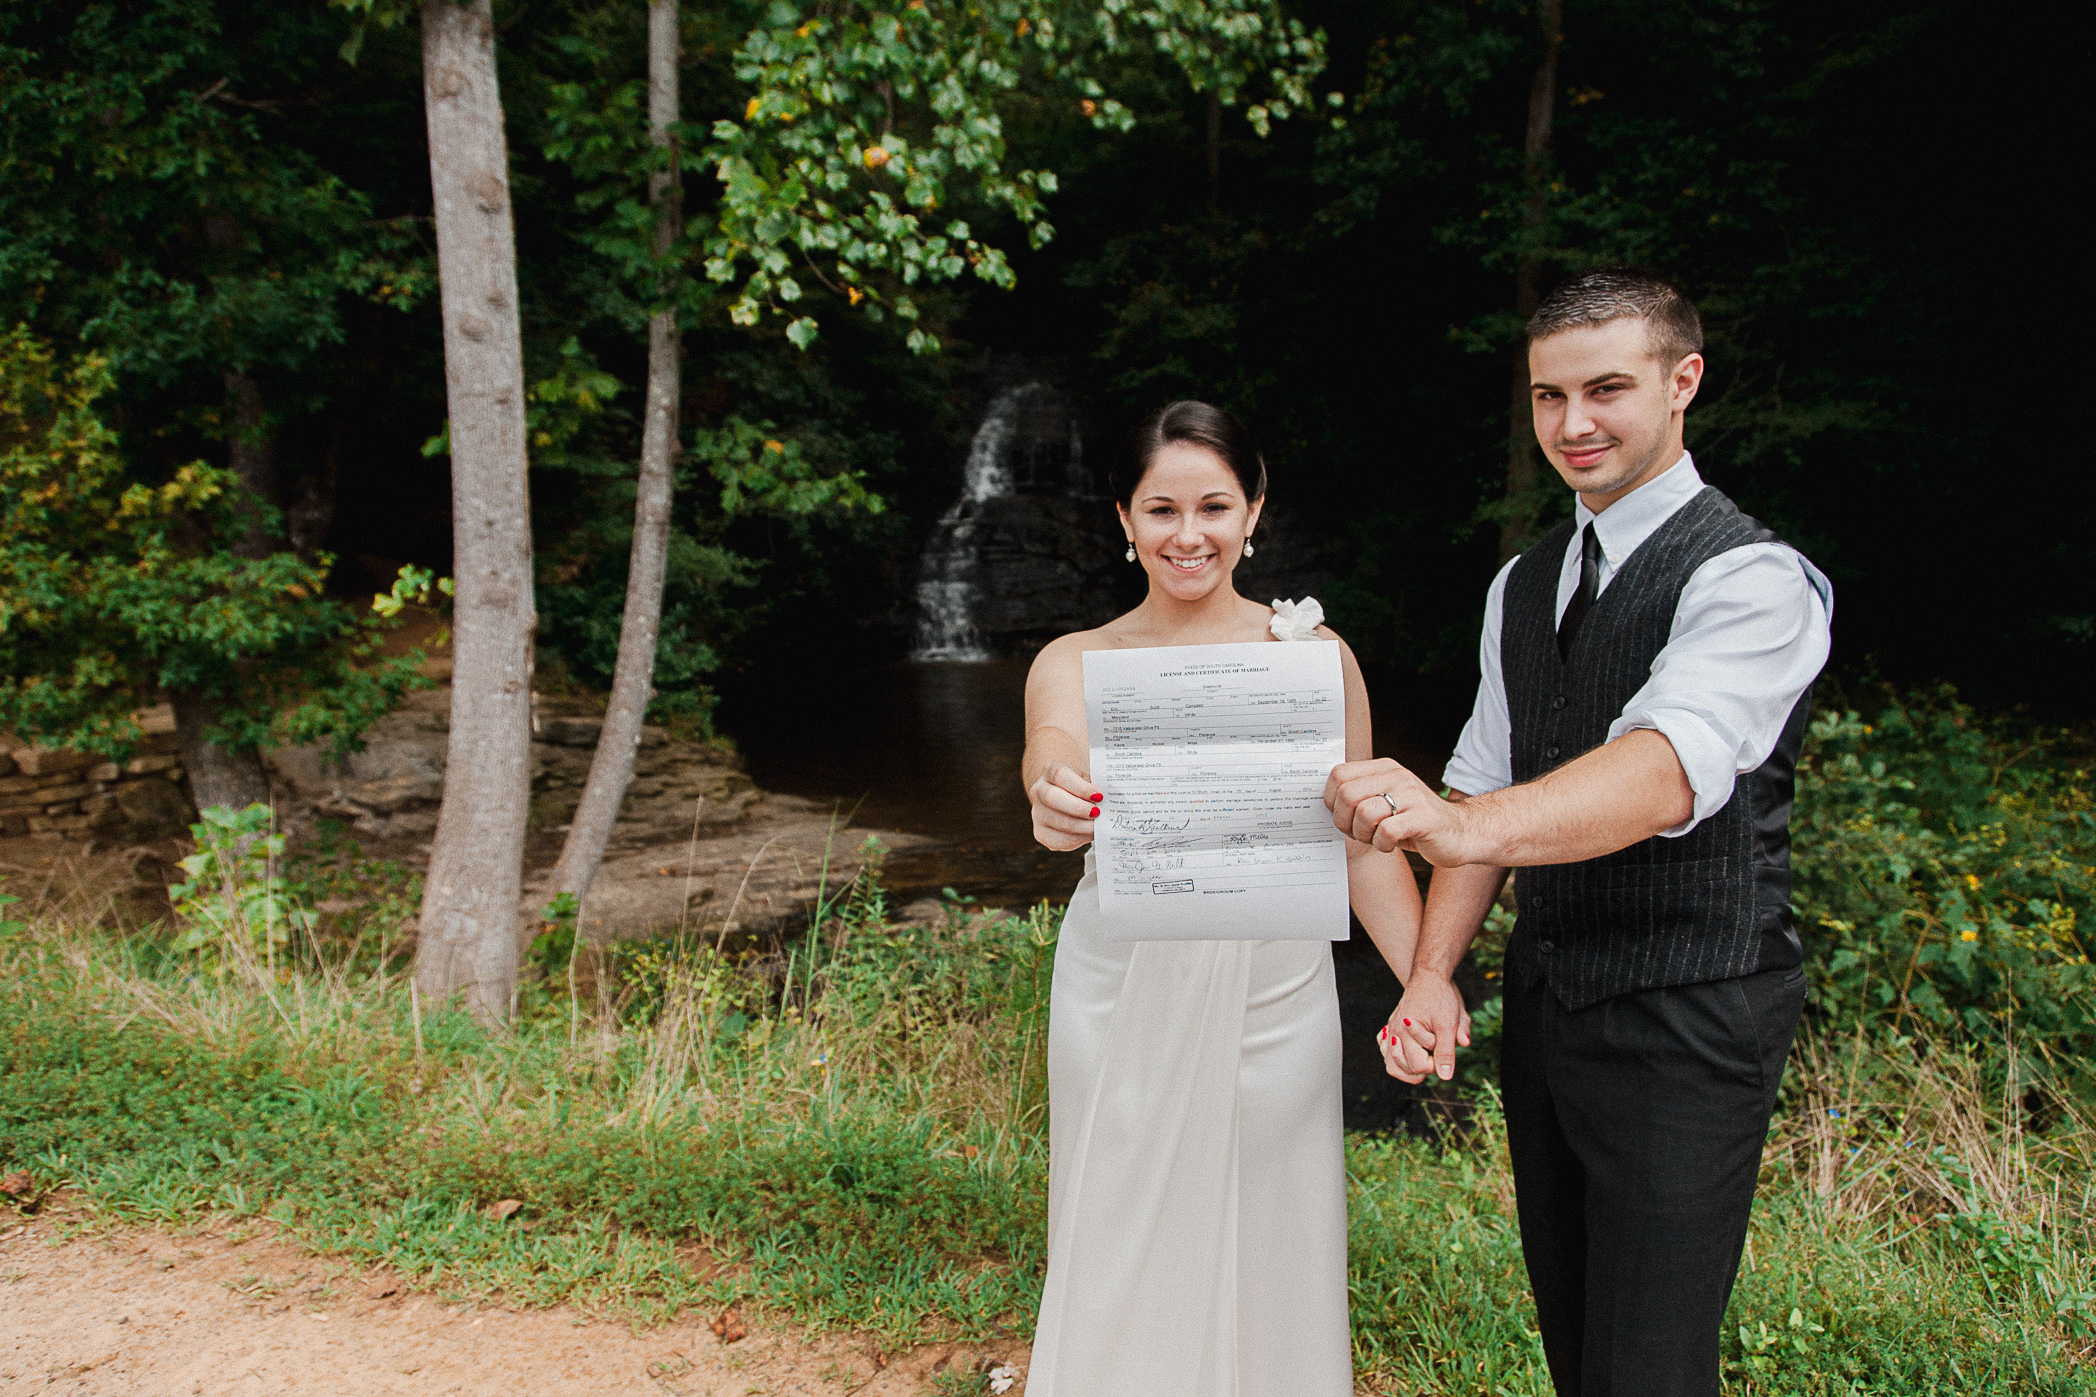 wildcat_falls_wedding (24 of 36).jpg